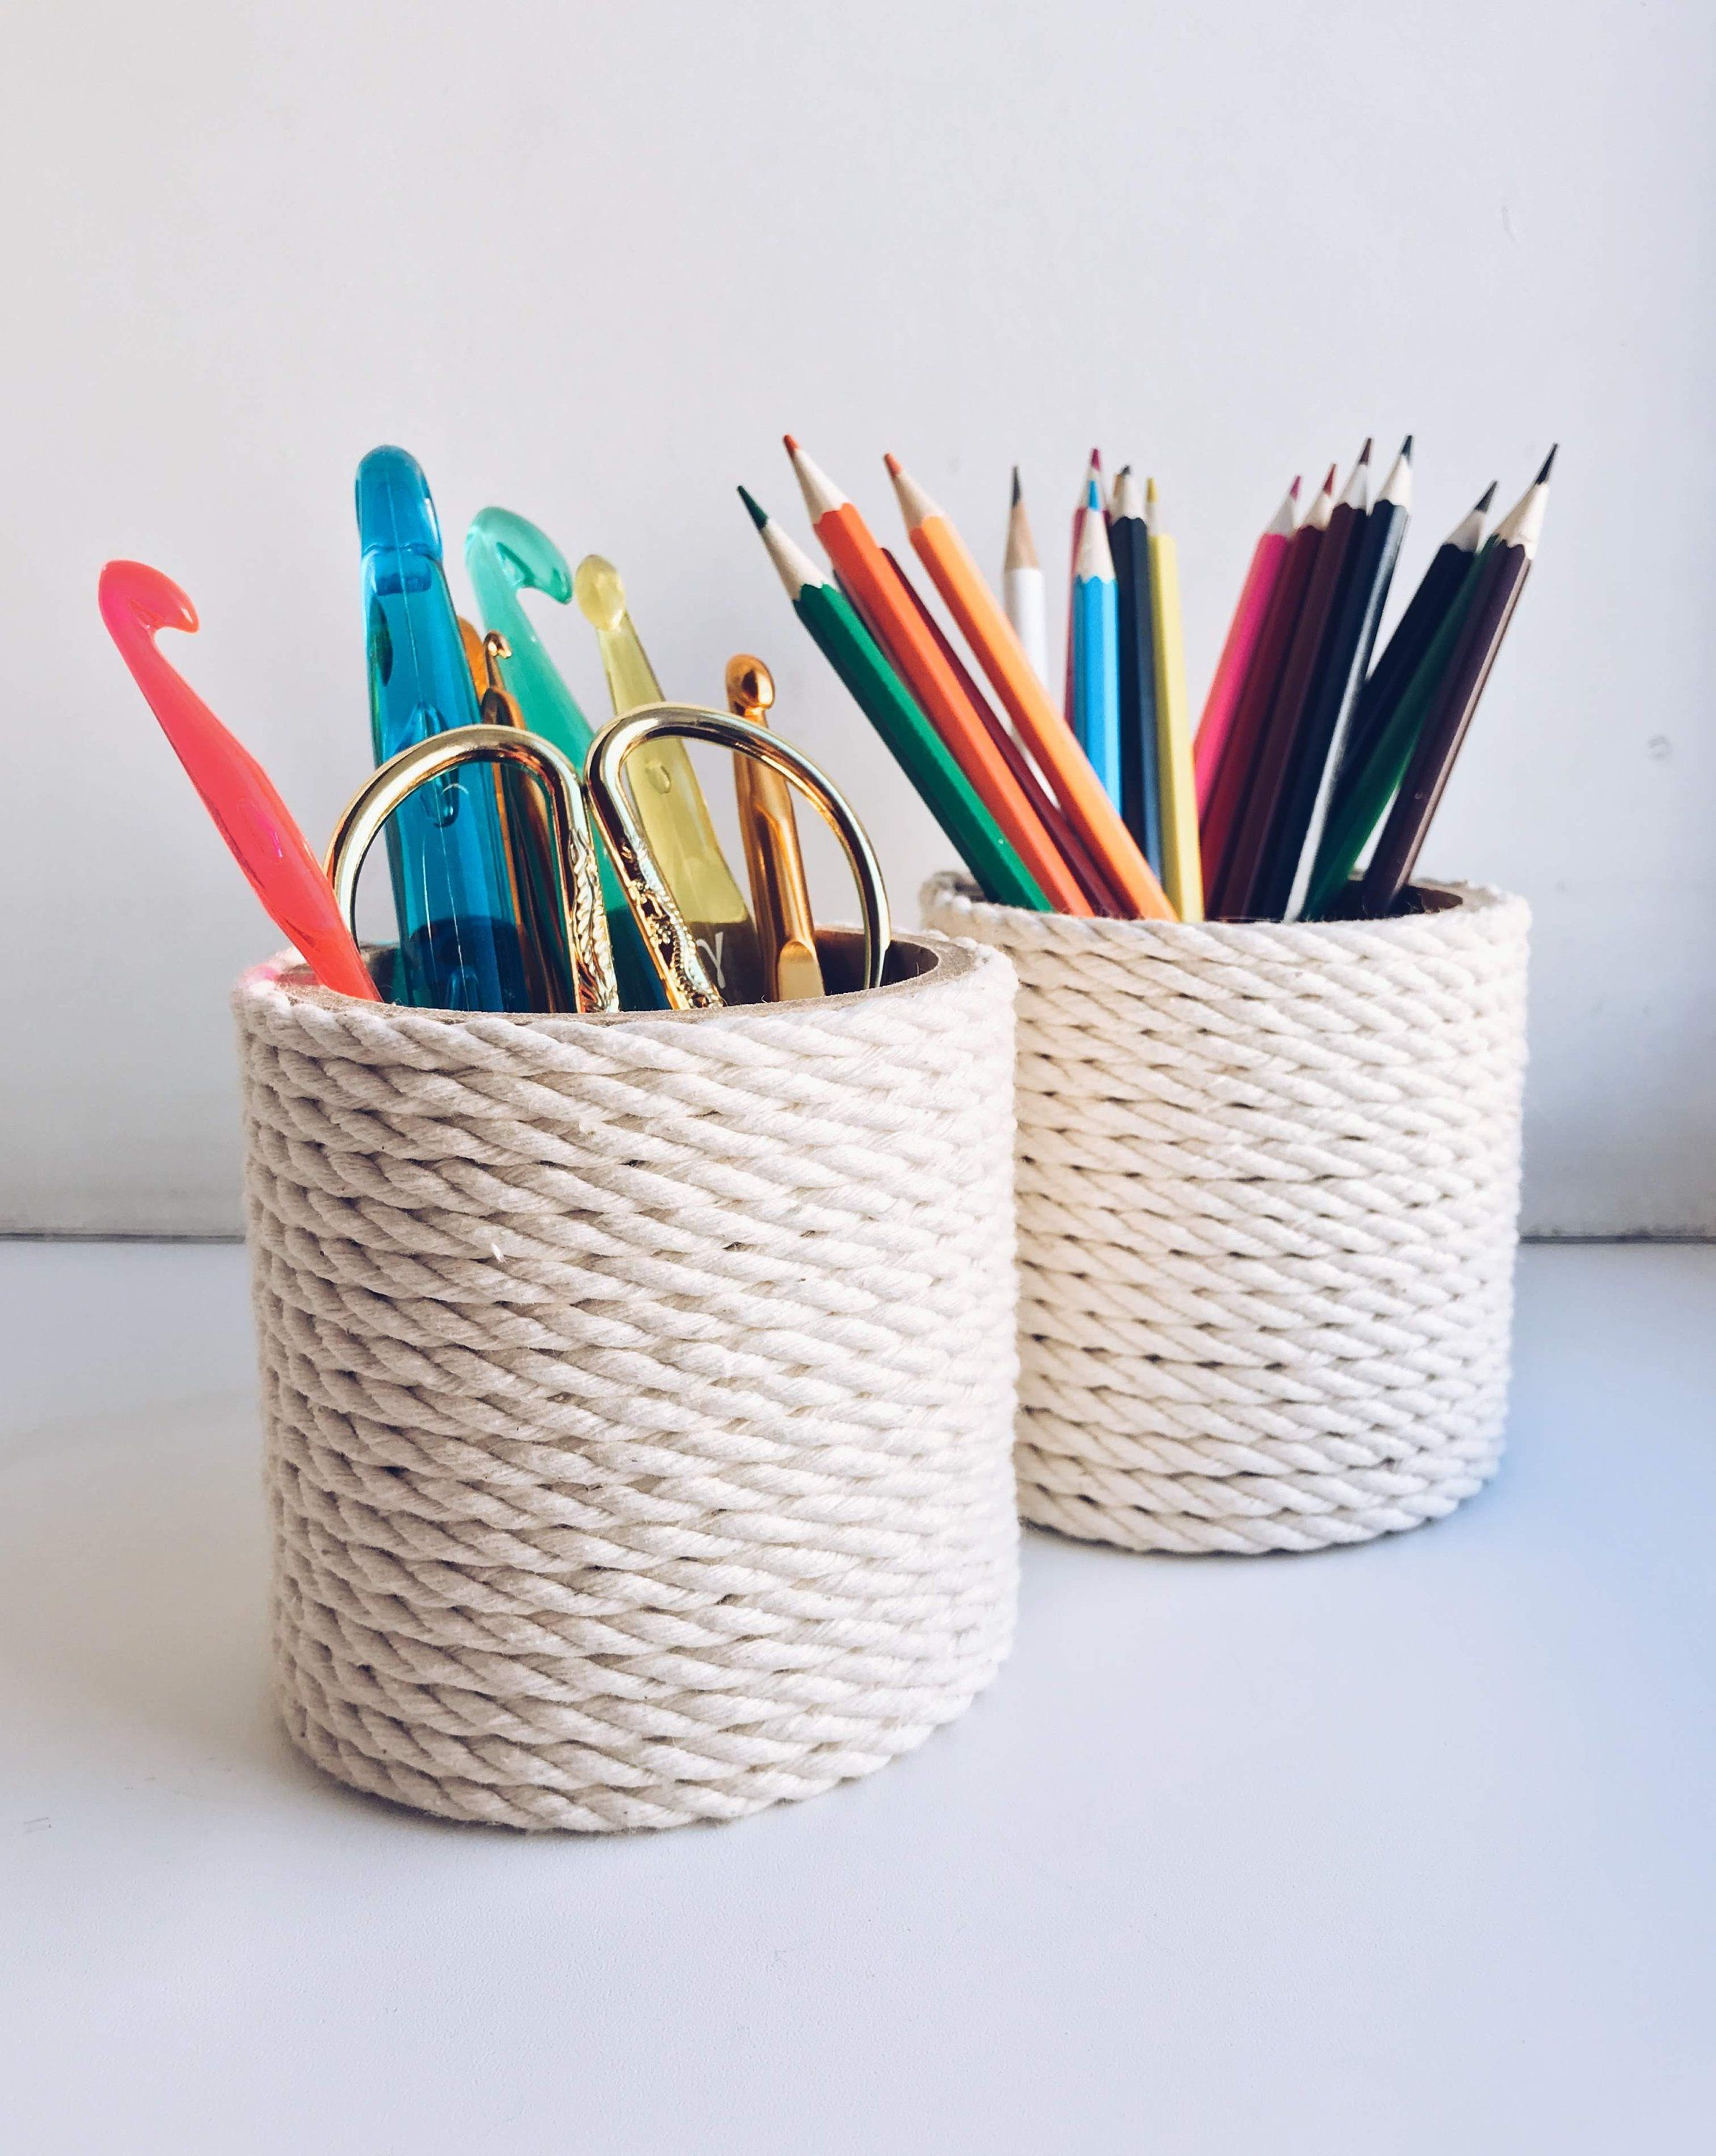 How To Make A Colored Pencil Storage Carousel Tutorial This Is